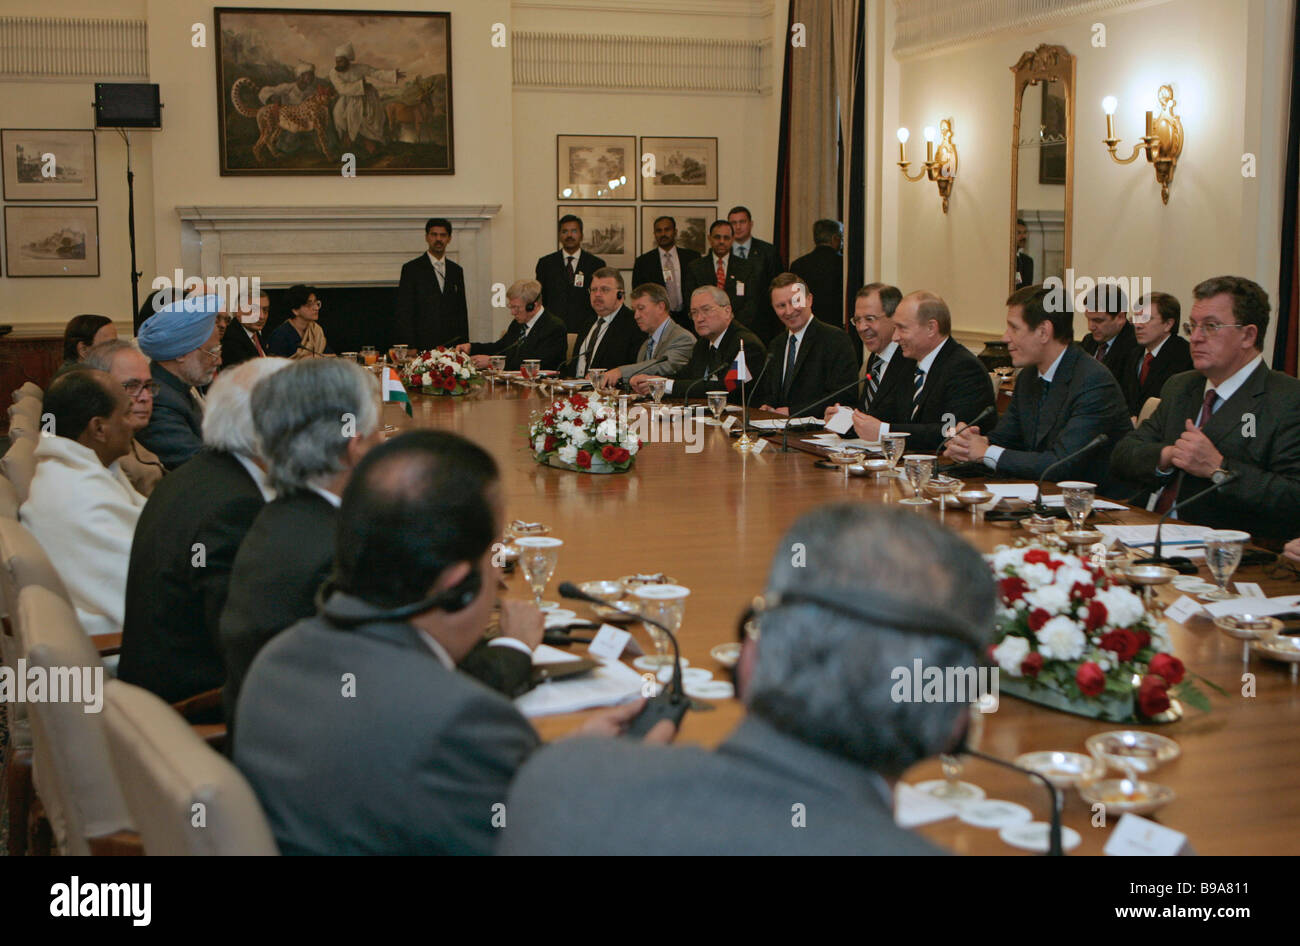 Russian Indian talks in the Hyderabad Palace in New Delhi - Stock Image